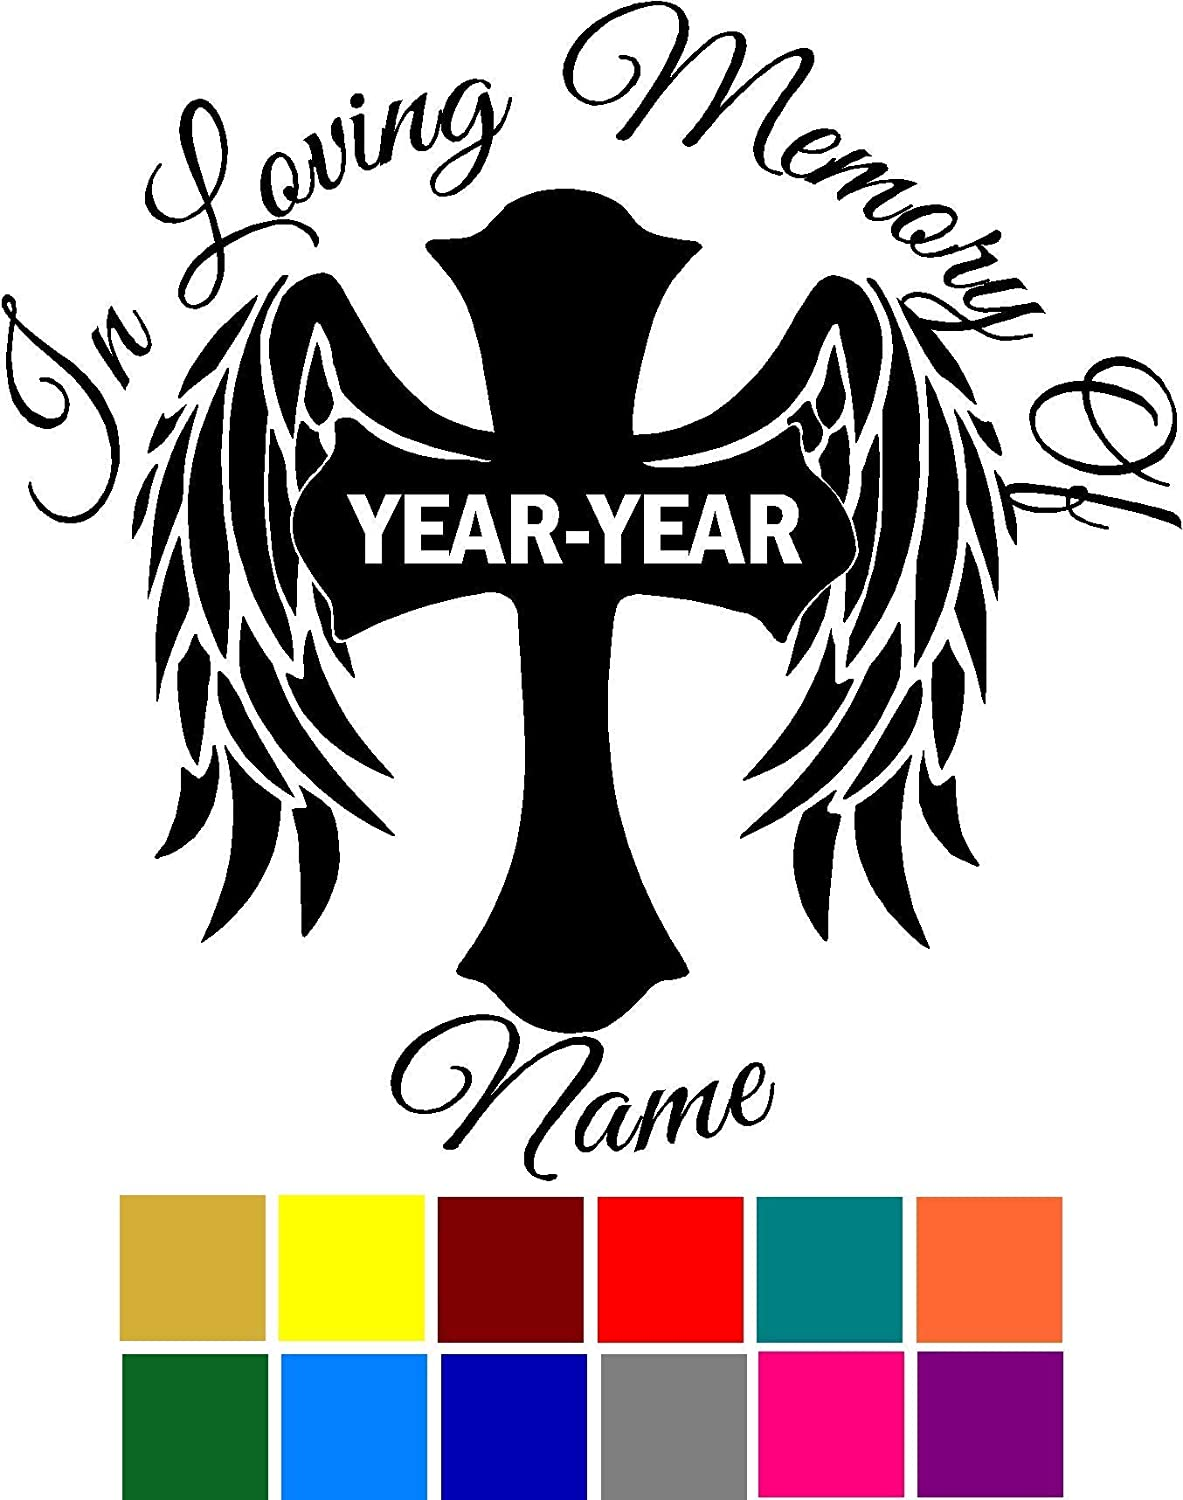 In Loving Memory Of Name Cross Heart Custom Customize Decal Sticker Vinyl Car Window Tumblers Wall Laptops Cellphones Phones Tablets Ipads Helmets Motorcycles V and T Gifts